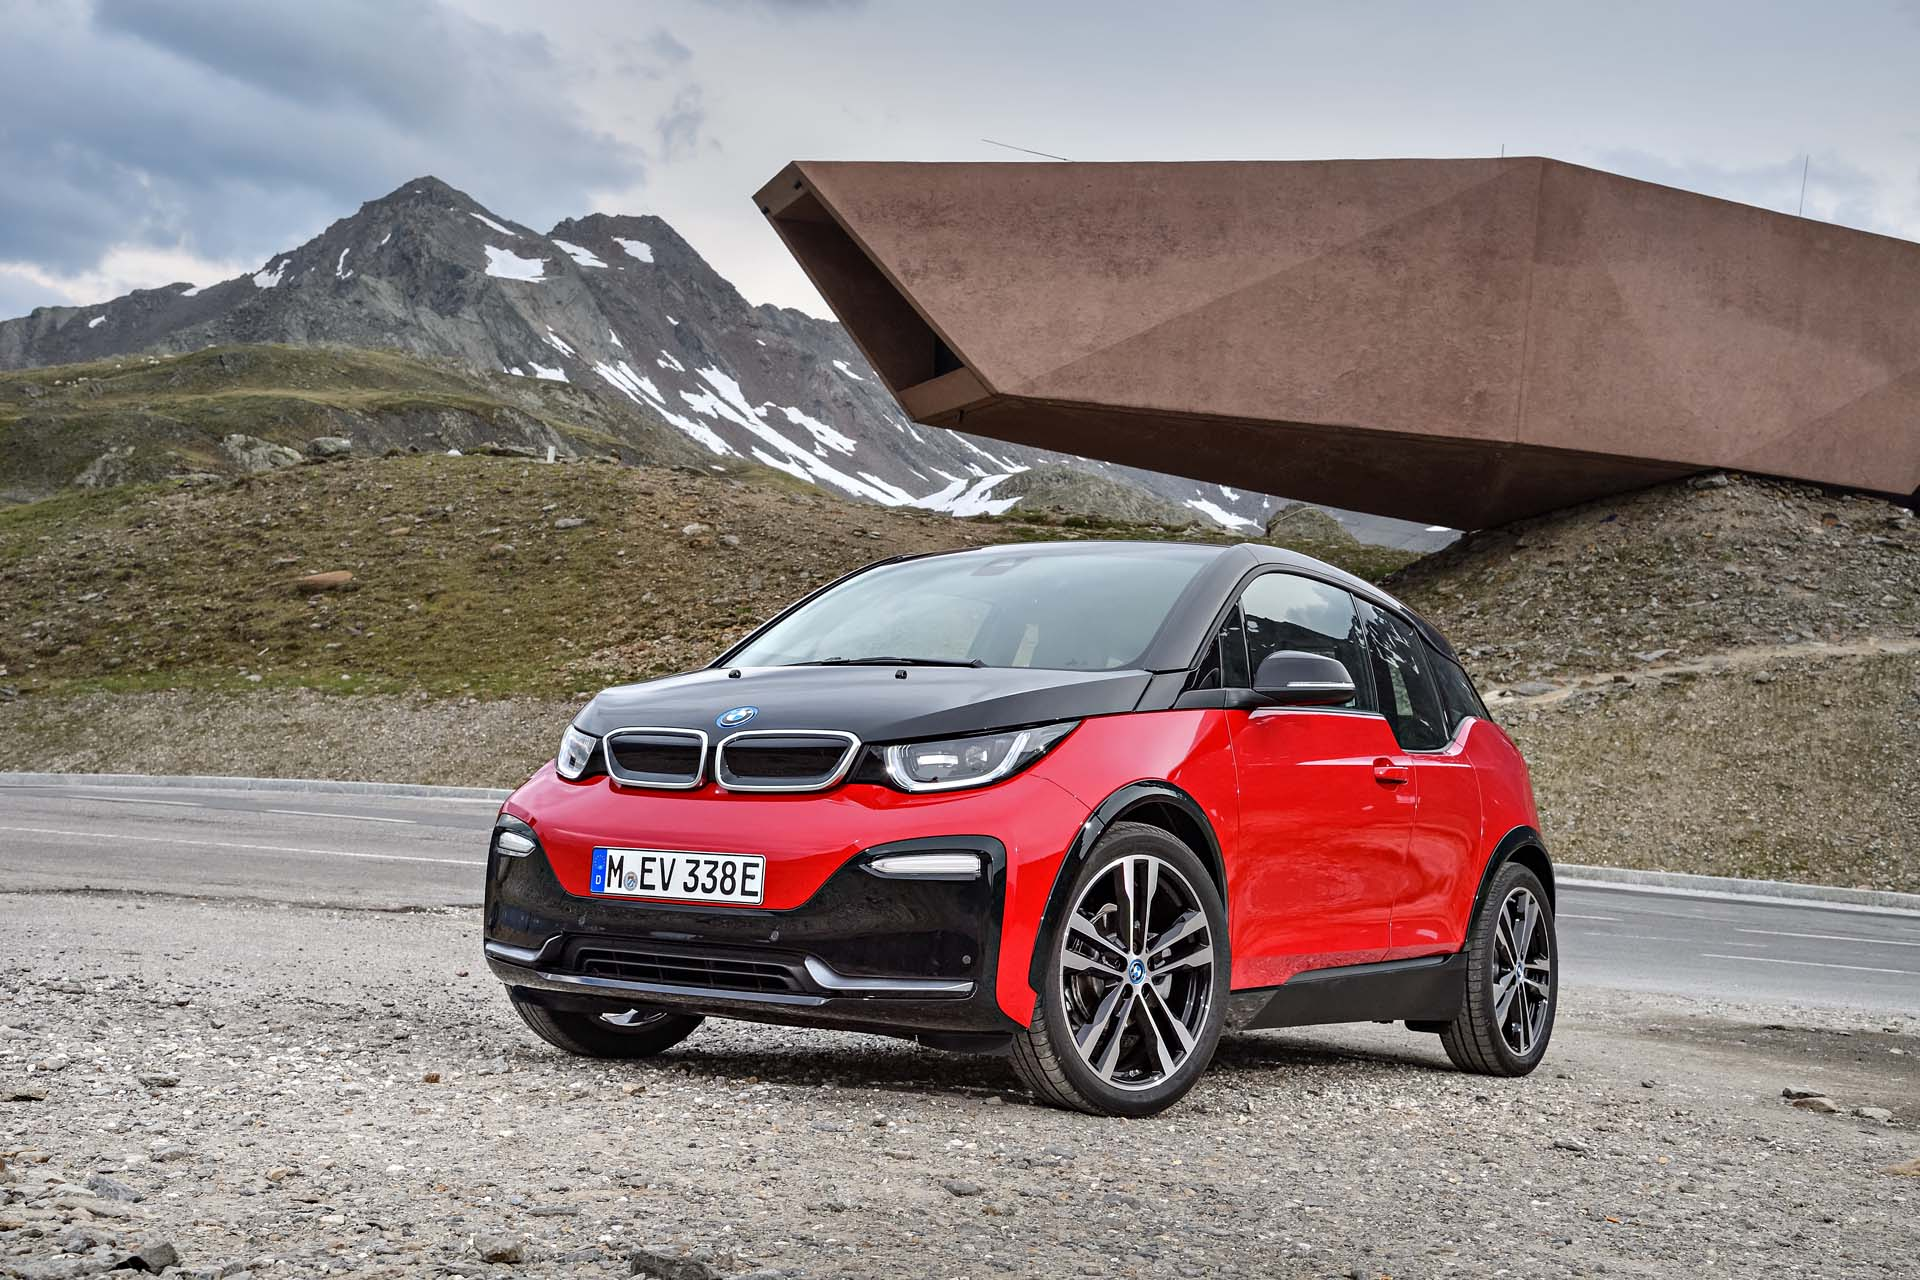 2018 Bmw I3s Range Efficiency Lower For Sportier Model Of Electric Car